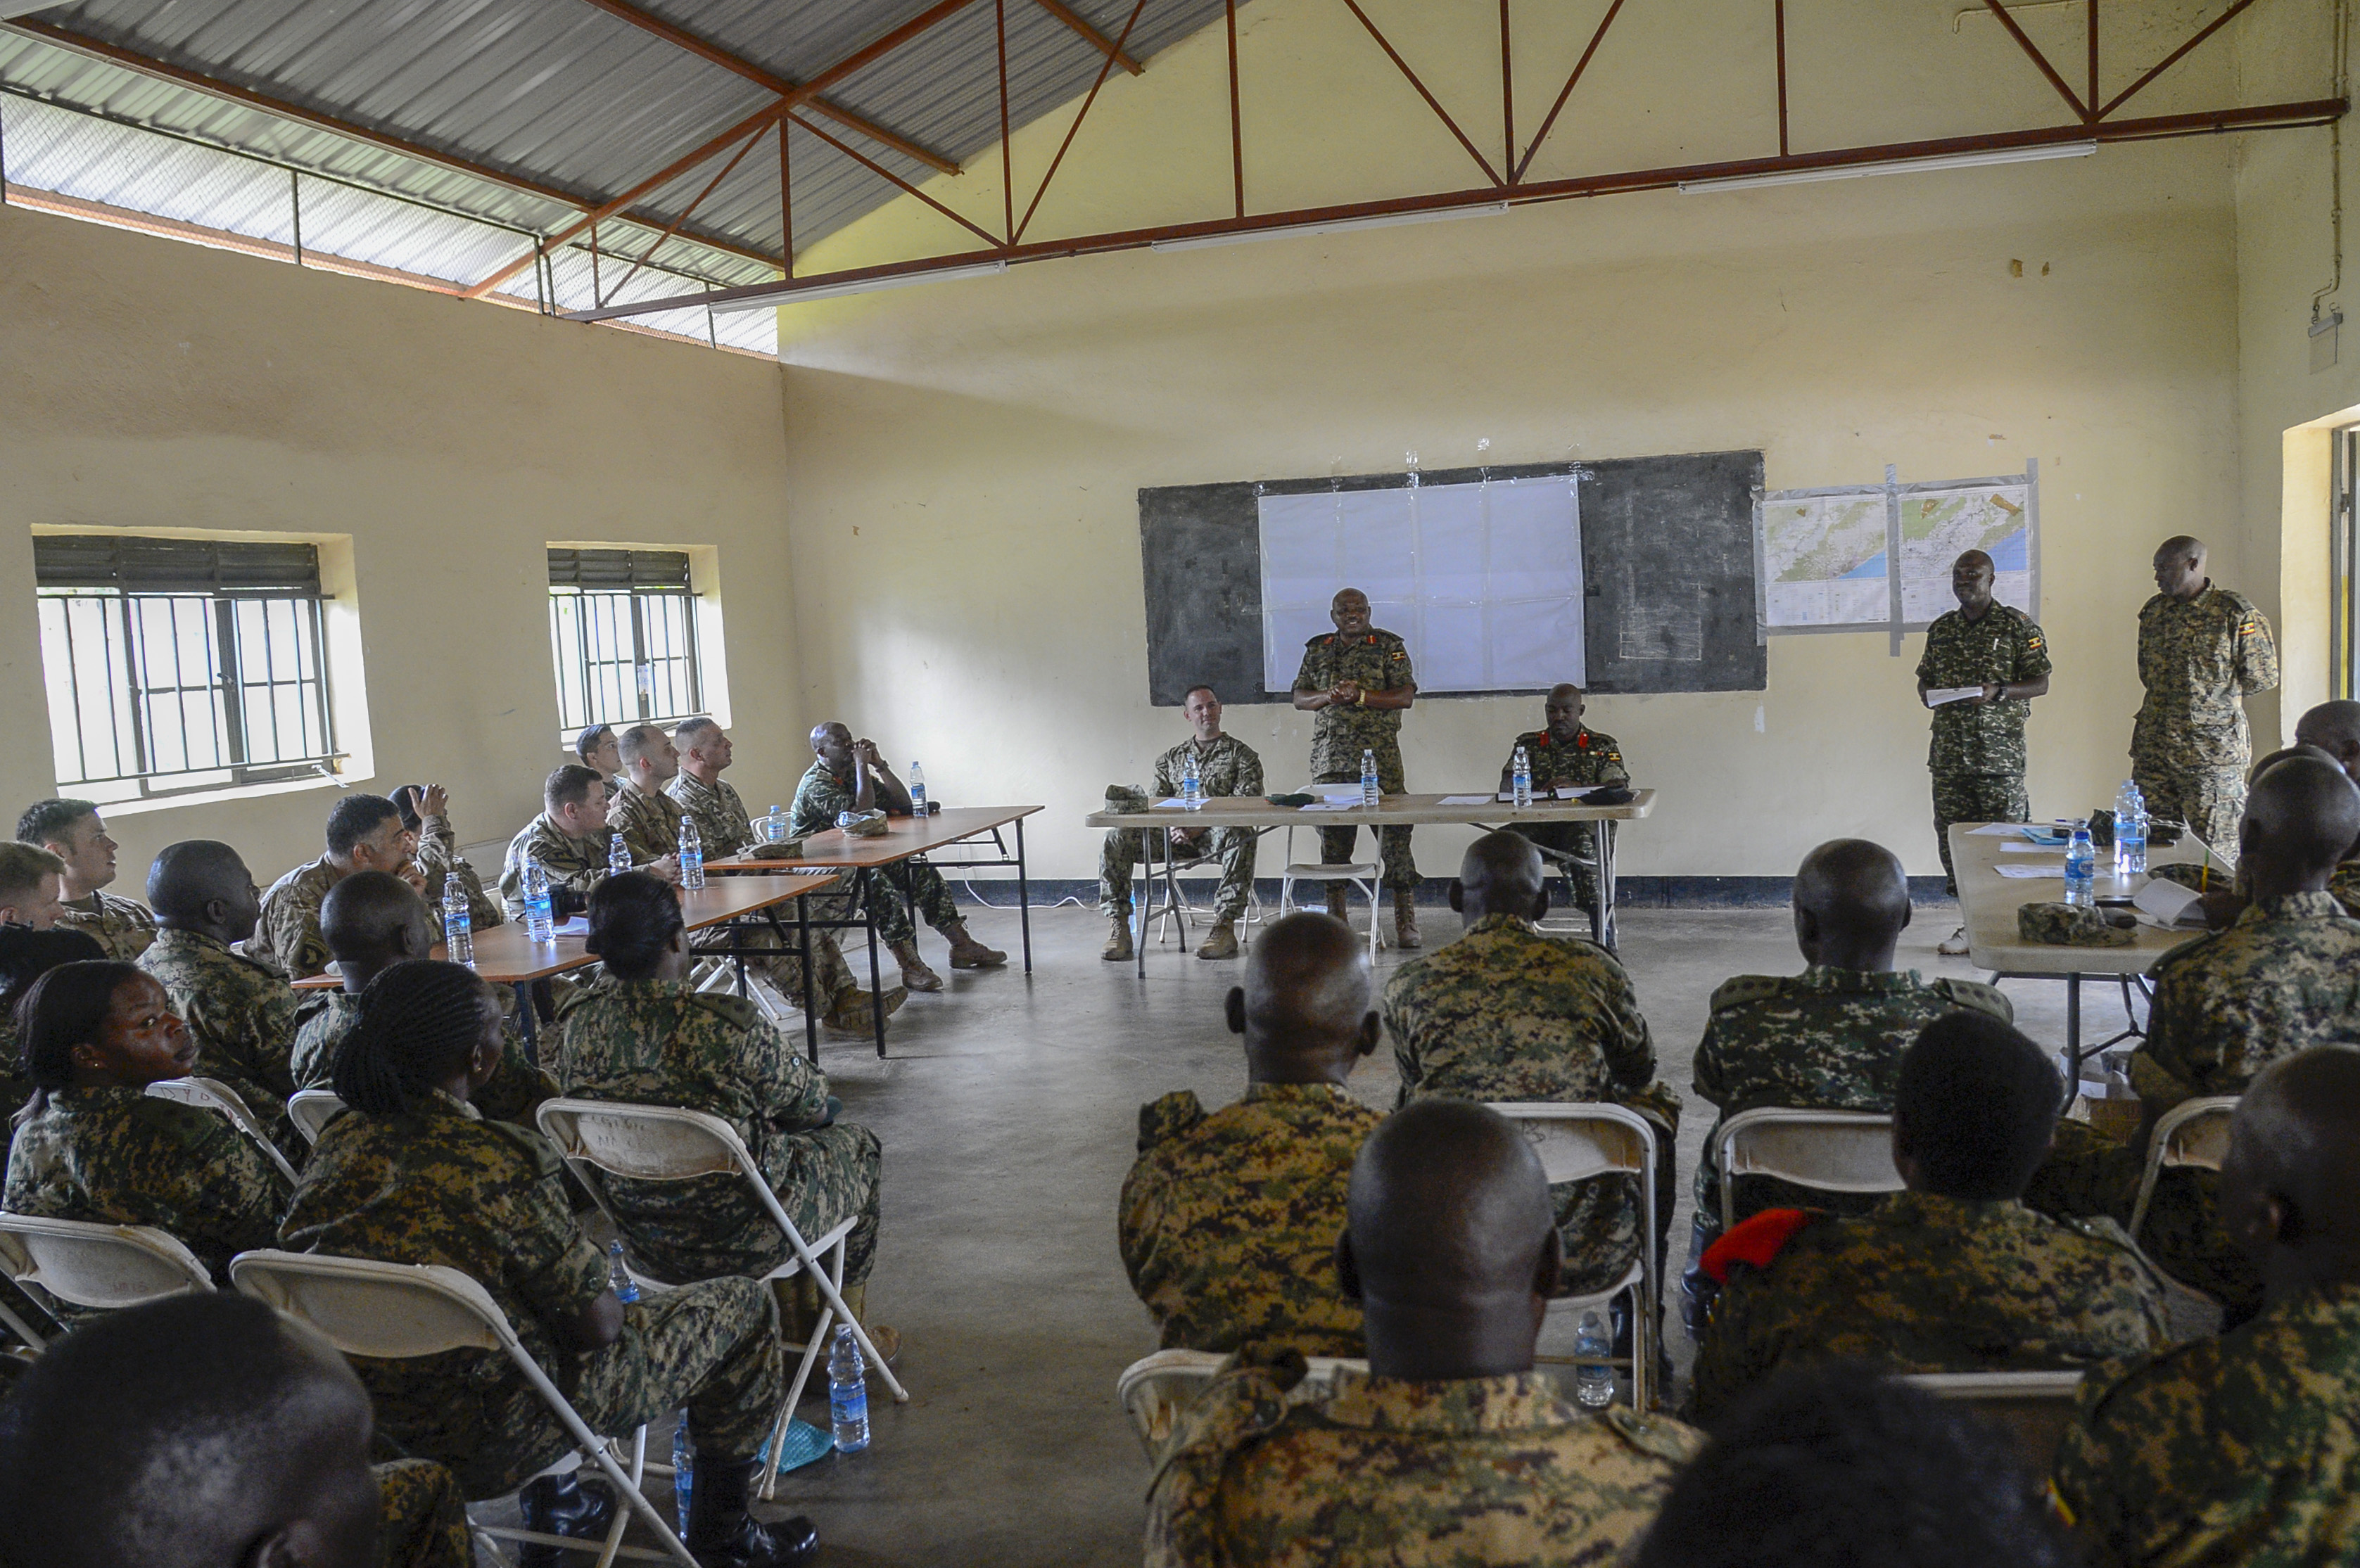 Uganda People's Defense Force (UPDF) Brig. Gen. Jack Backasumba, Camp Singo Commandant, addresses UPDF soldiers during the graduation ceremony for a 10-week civil affairs operations course provided by U.S. Army Soldiers assigned to the 404th Civil Affairs Battalion, at Camp Singo, Uganda, April 13, 2018. The civil affairs course is designed to enhance the UPDF's capability and capacity to support its enduring African Union peacekeeping force and African Union Mission in Somalia mandates through civil military cooperation. (U.S. Navy Photo by Mass Communication Specialist 2nd Class Timothy M. Ahearn)